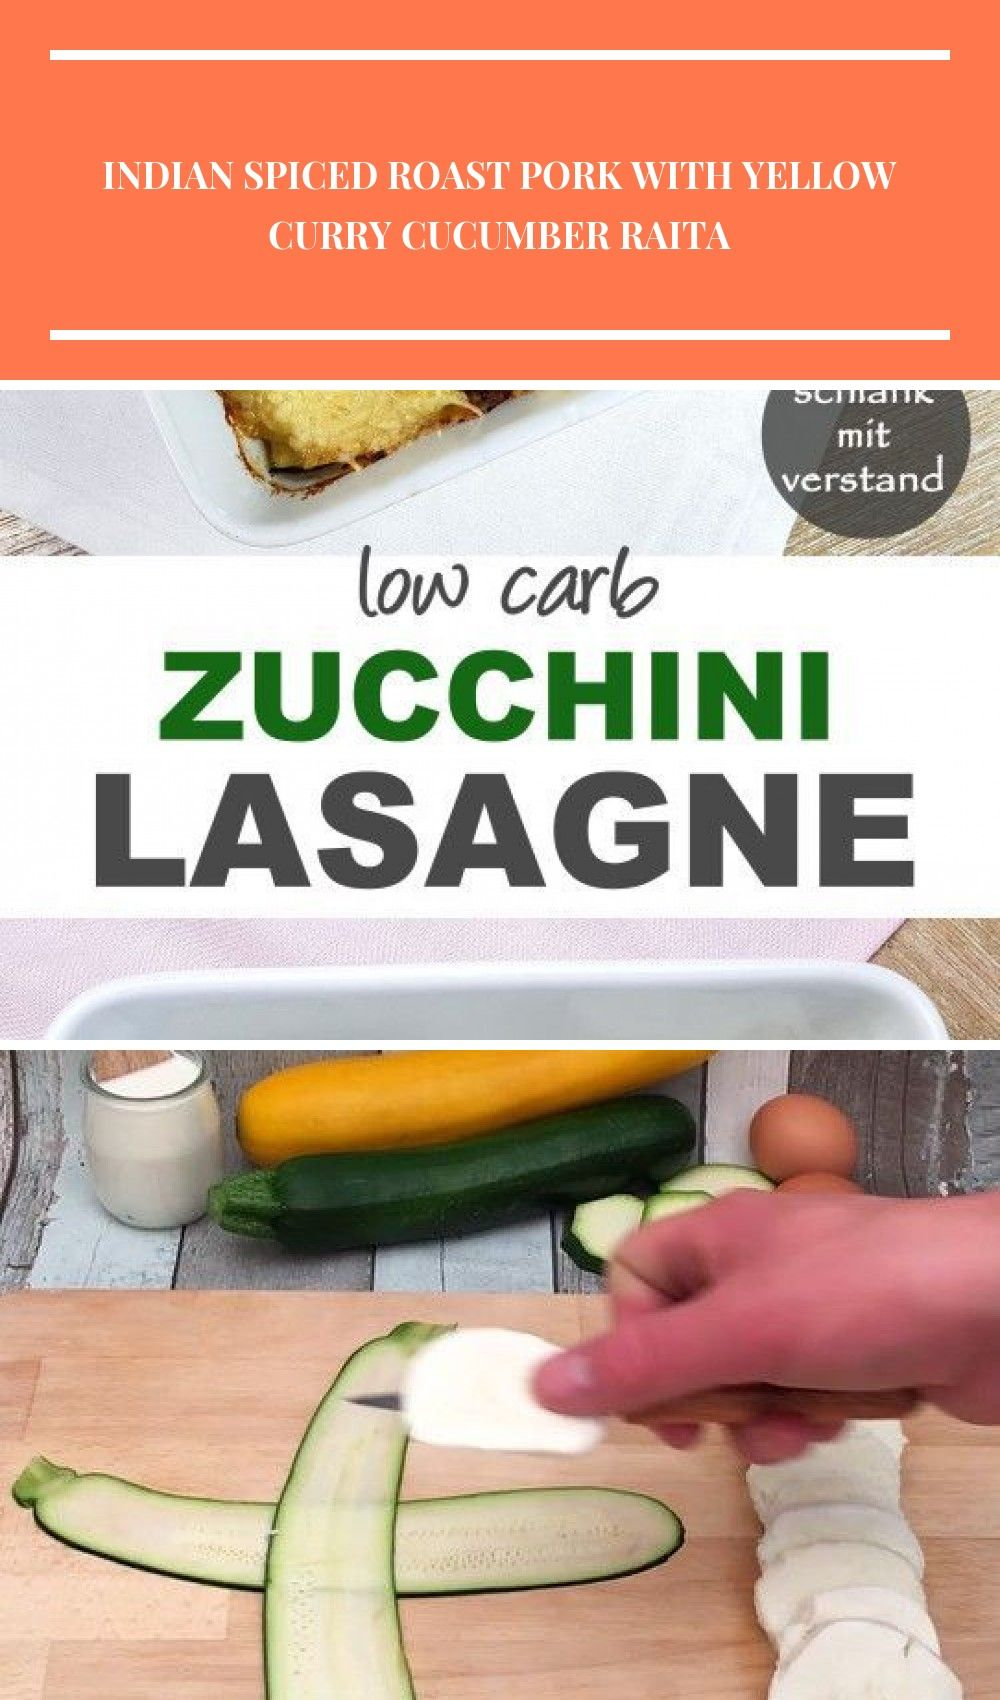 Zucchini Lasagne low carb  Zucchini Indian Spiced Roast Pork with Yellow Curry Cucumber Raita